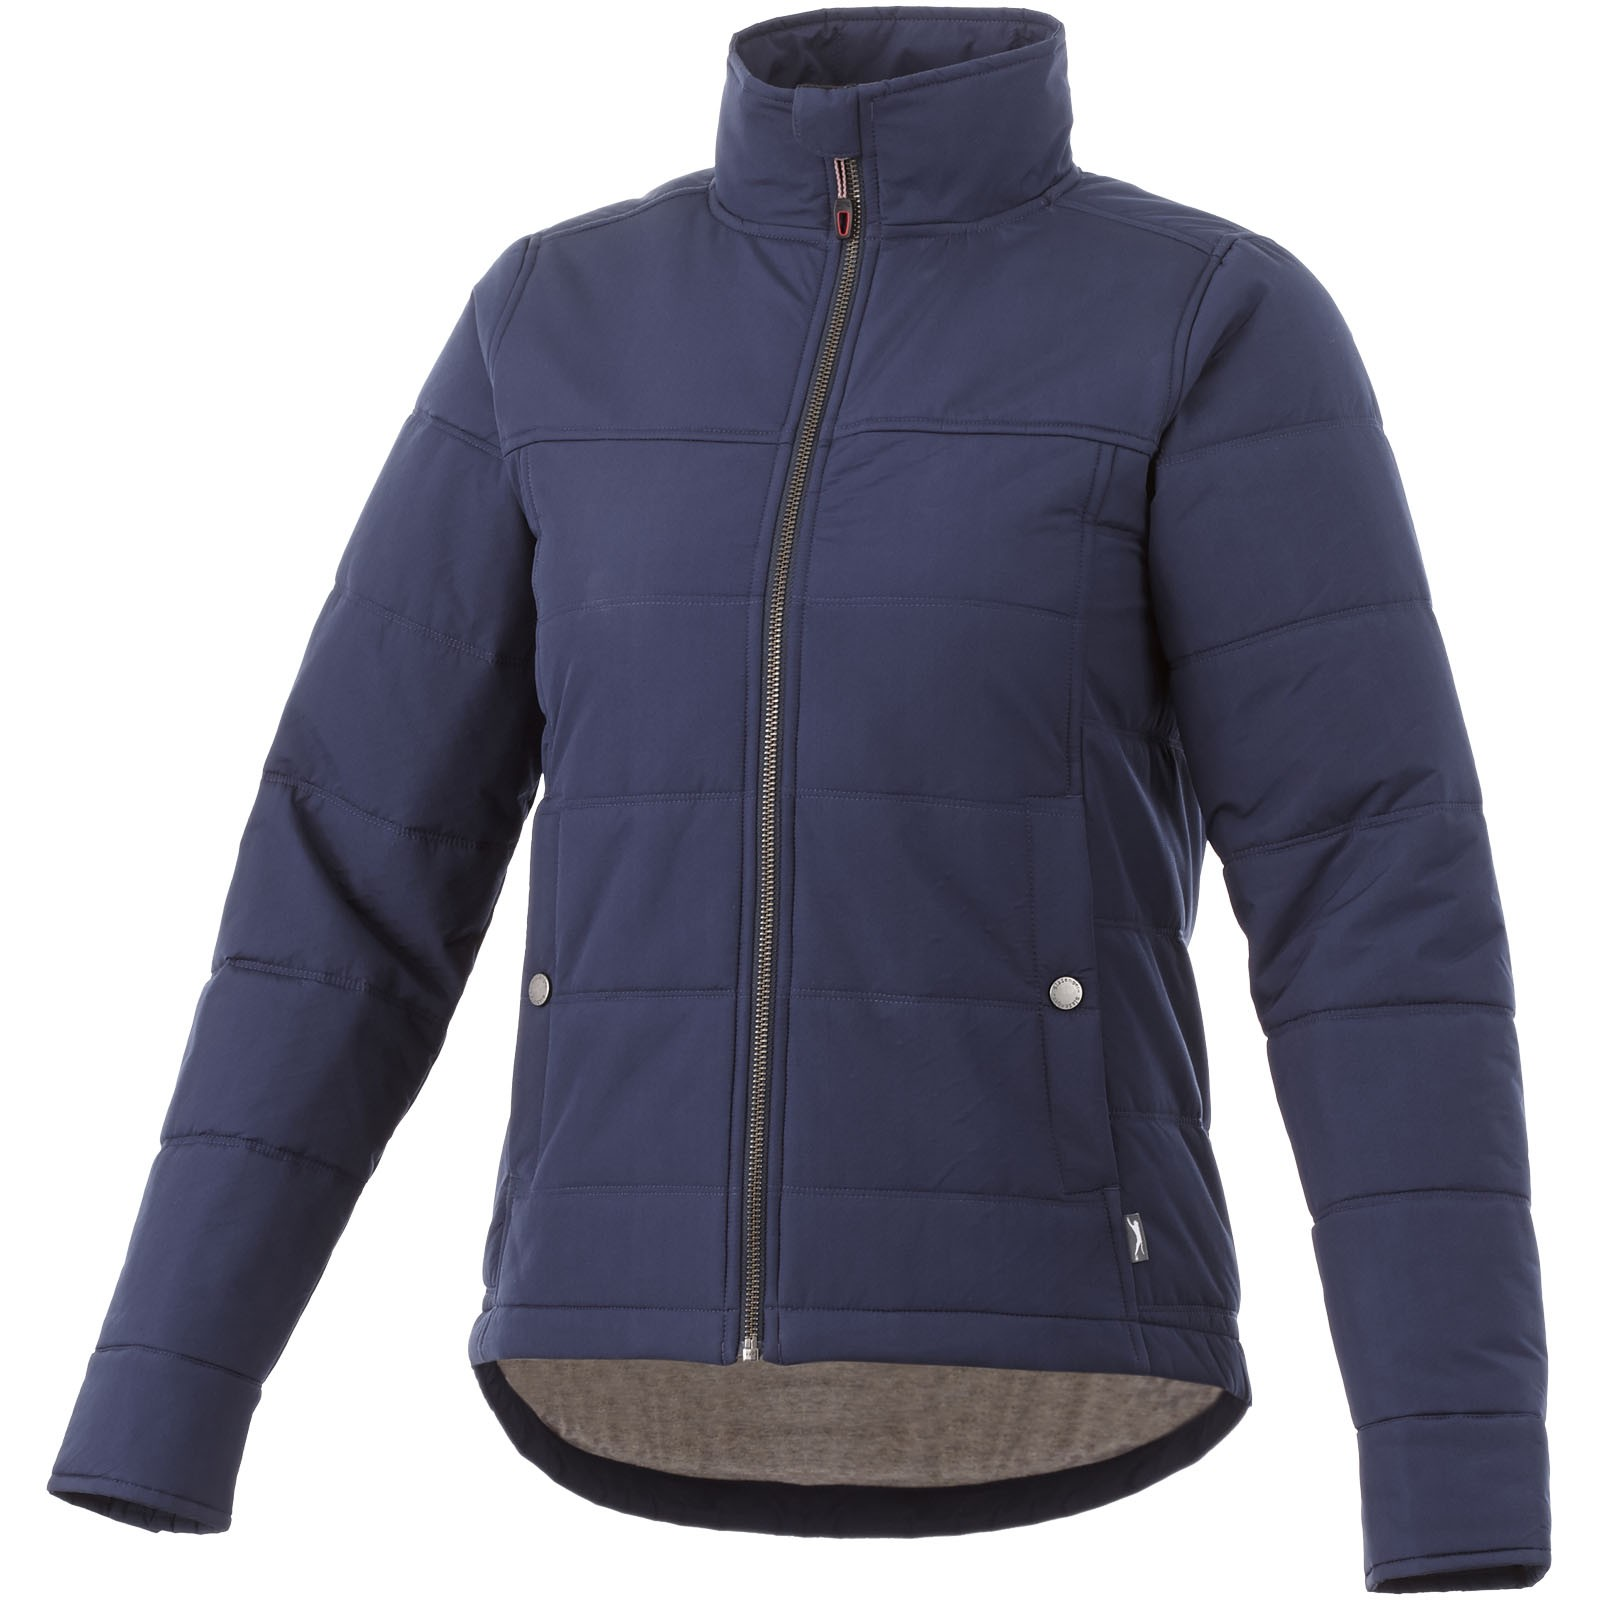 Bouncer insulated ladies jacket - Navy / M